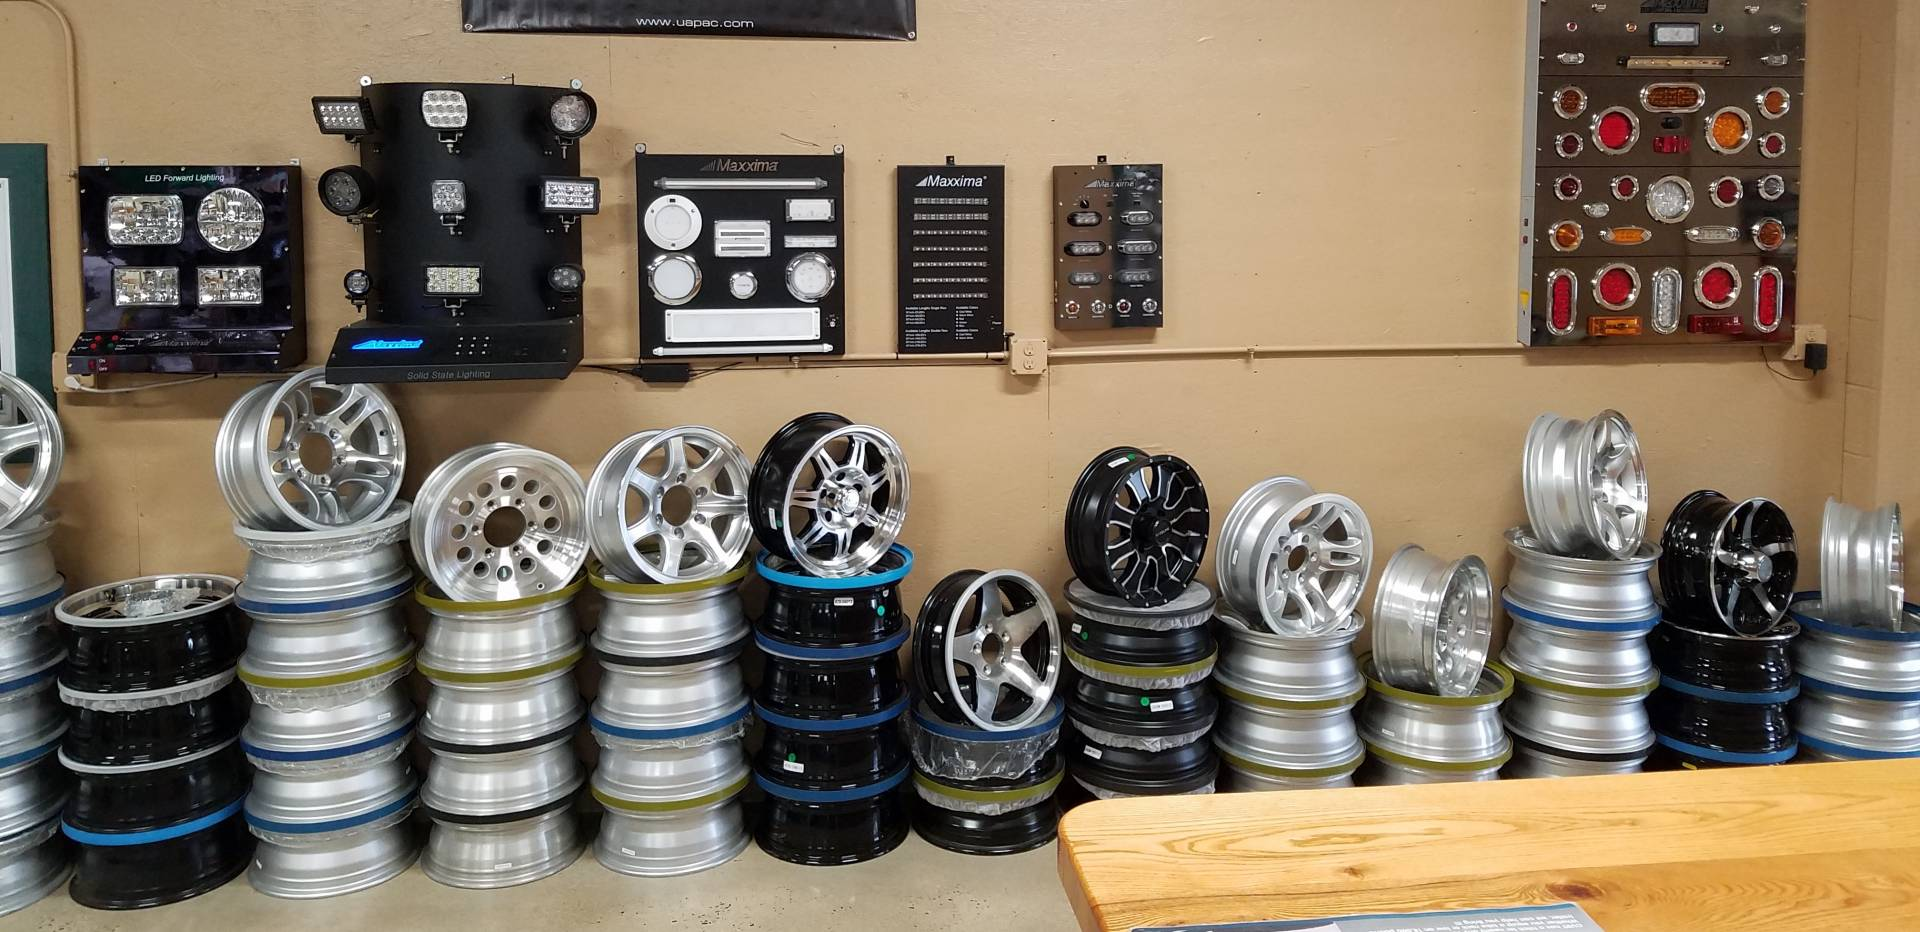 Online Source for Trailer Parts